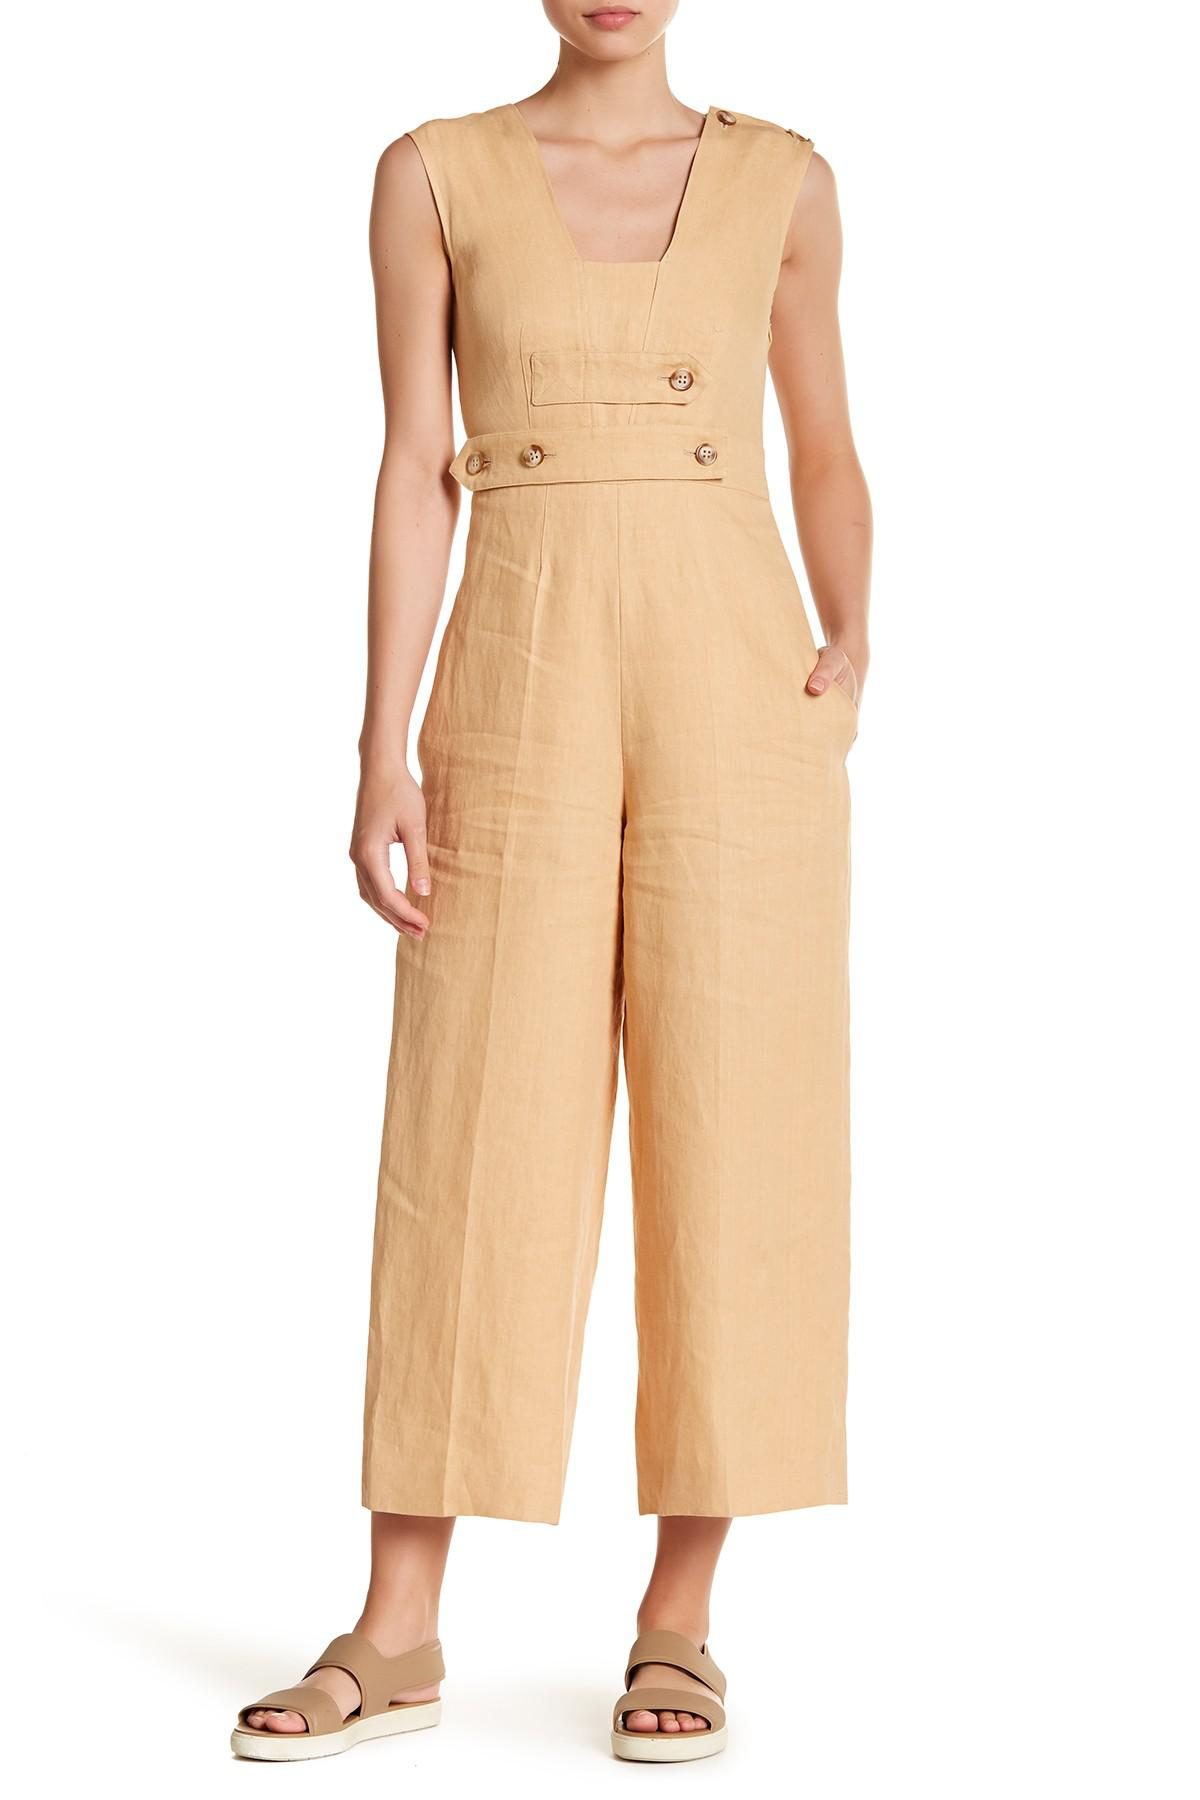 2c85a56c6fe Lyst - Max Mara Bray Linen Overall Jumpsuit in Natural